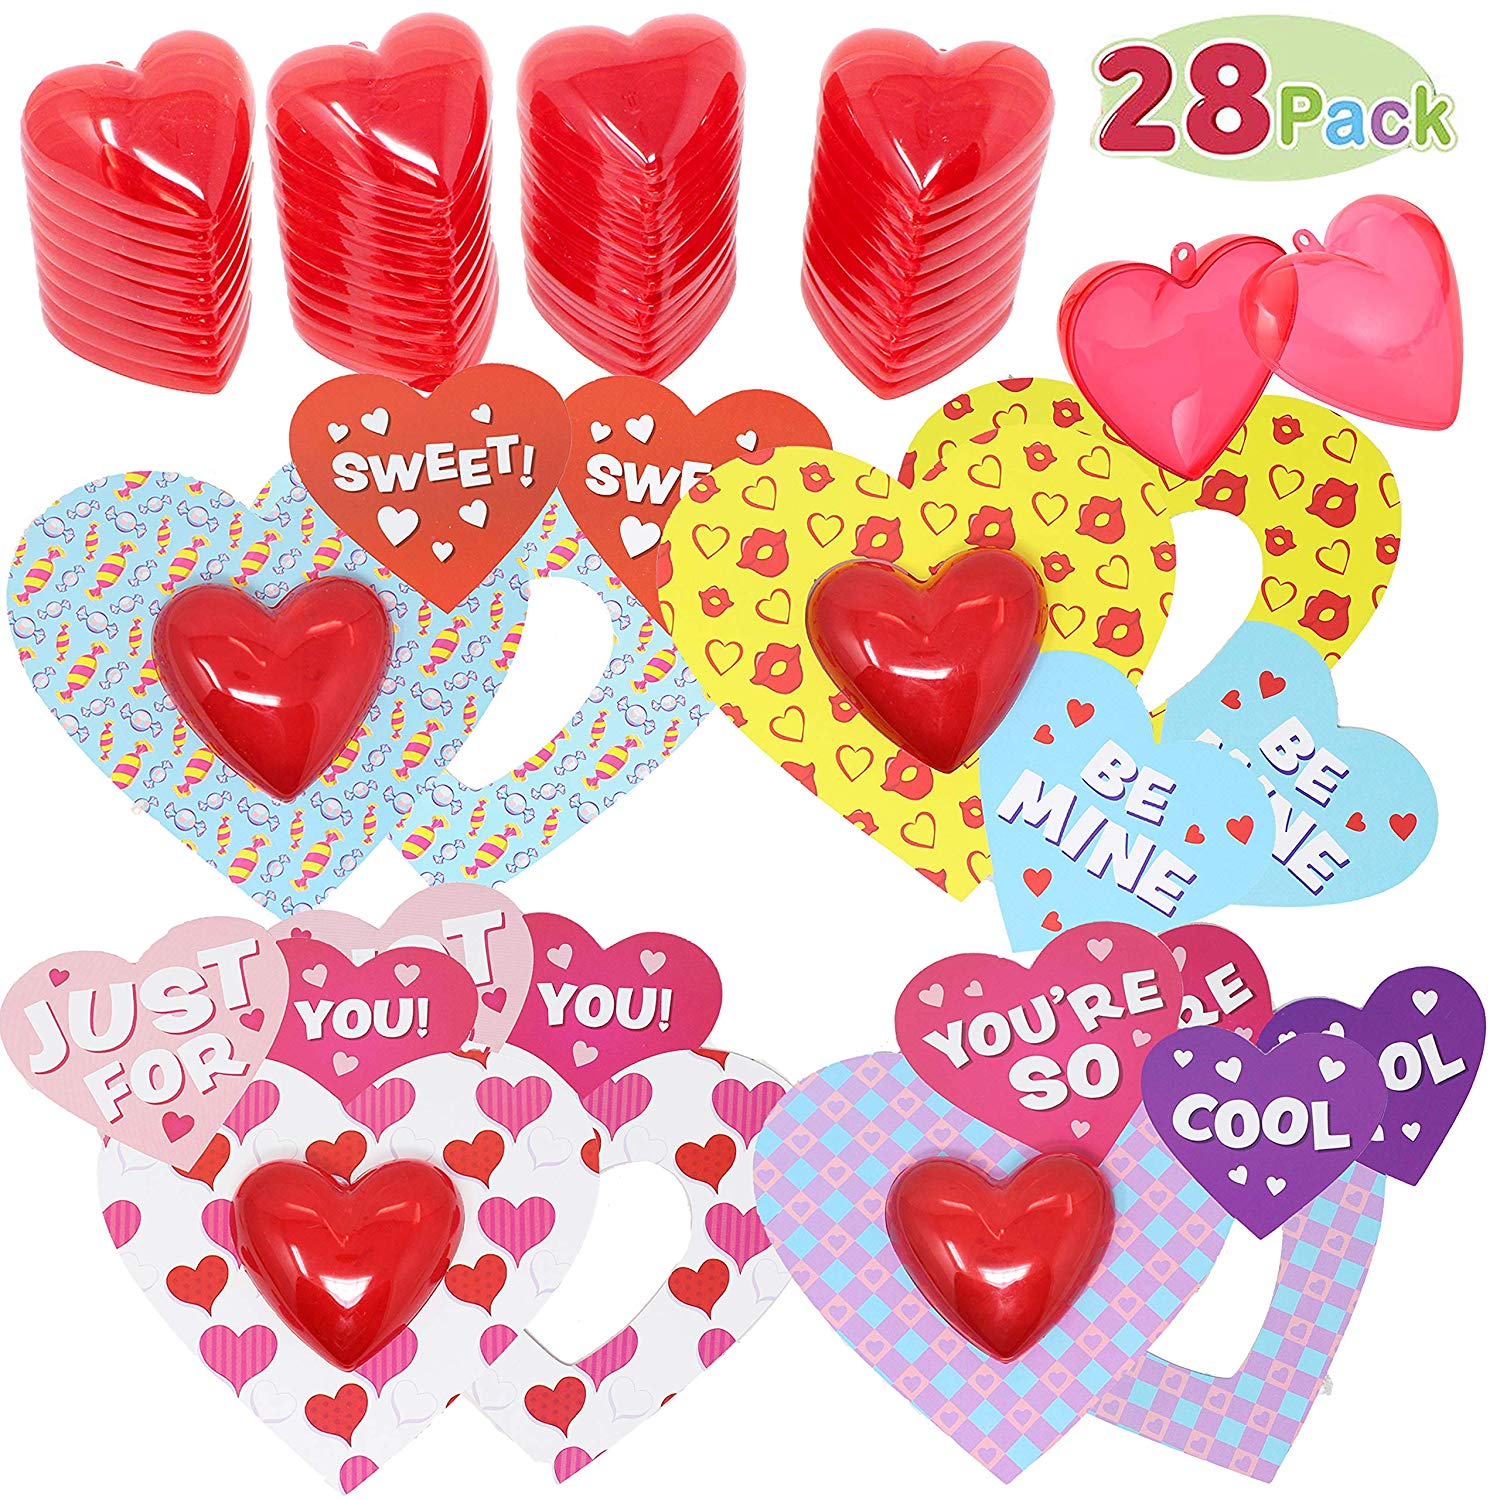 Valentine Cards s with Translucent Hearts